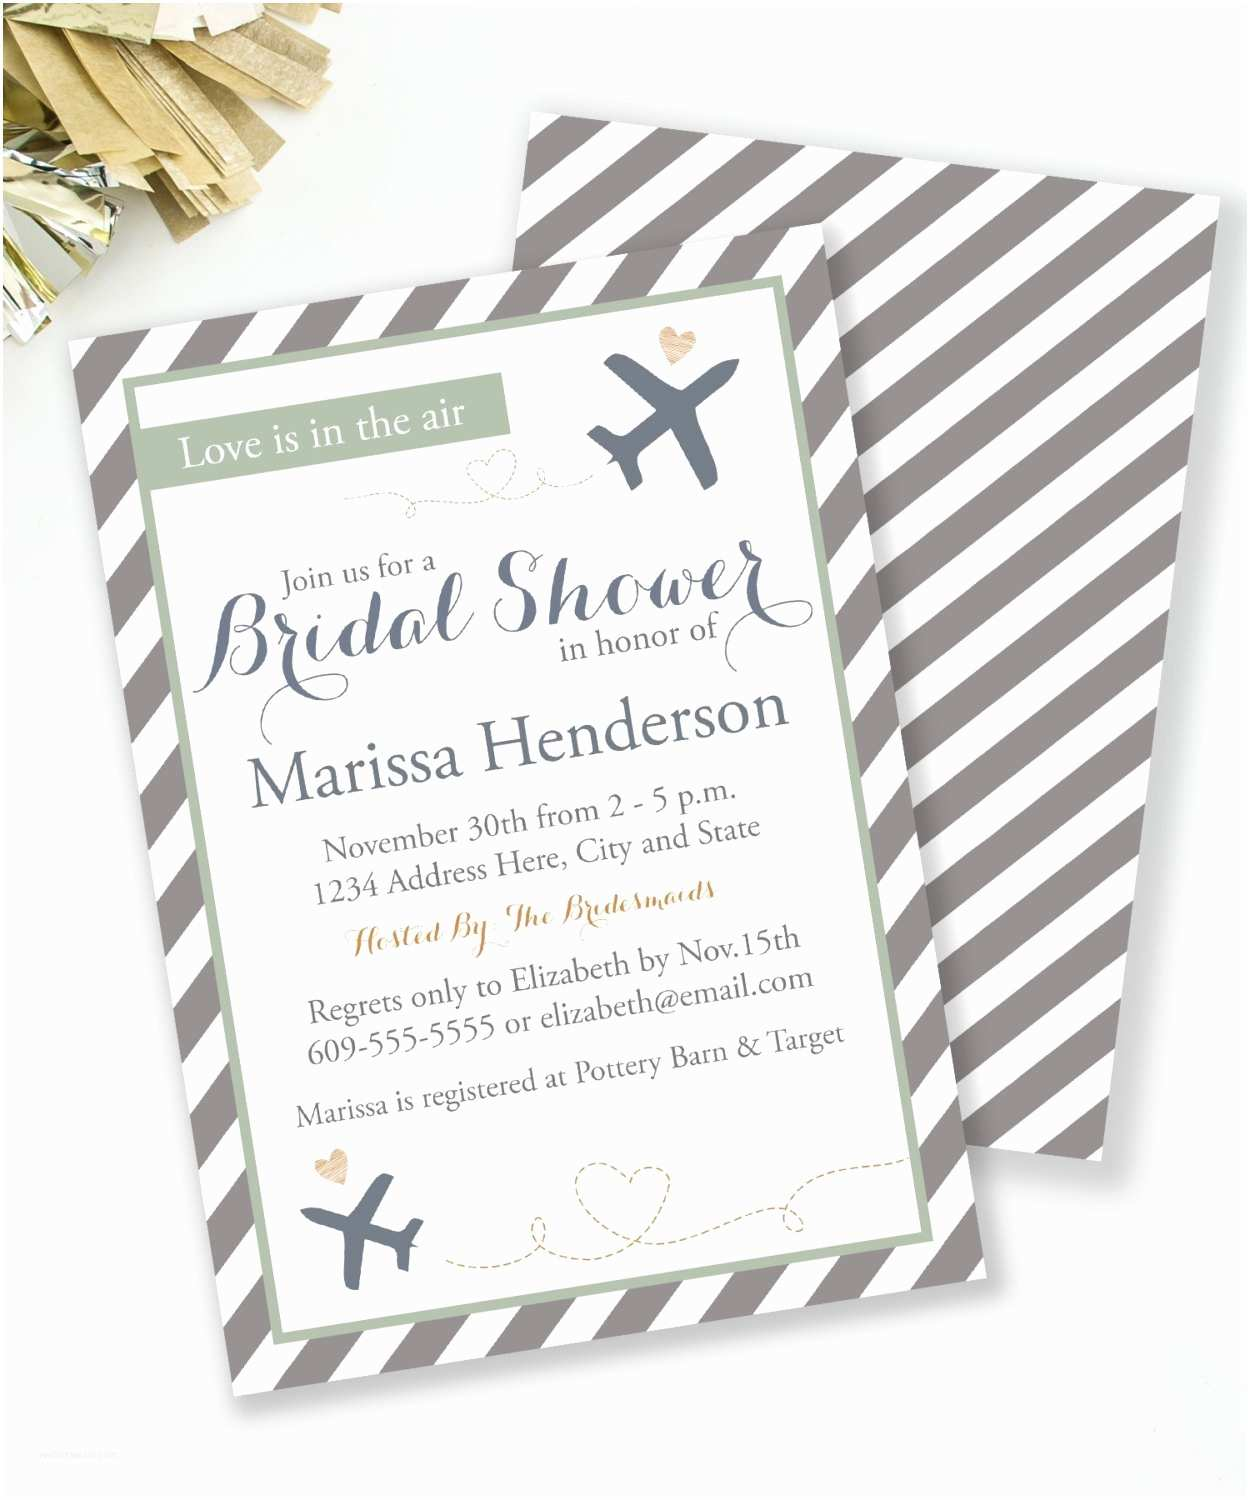 Travel themed Wedding Shower Invitations Travel Bridal Shower Invitation Travel theme Shower